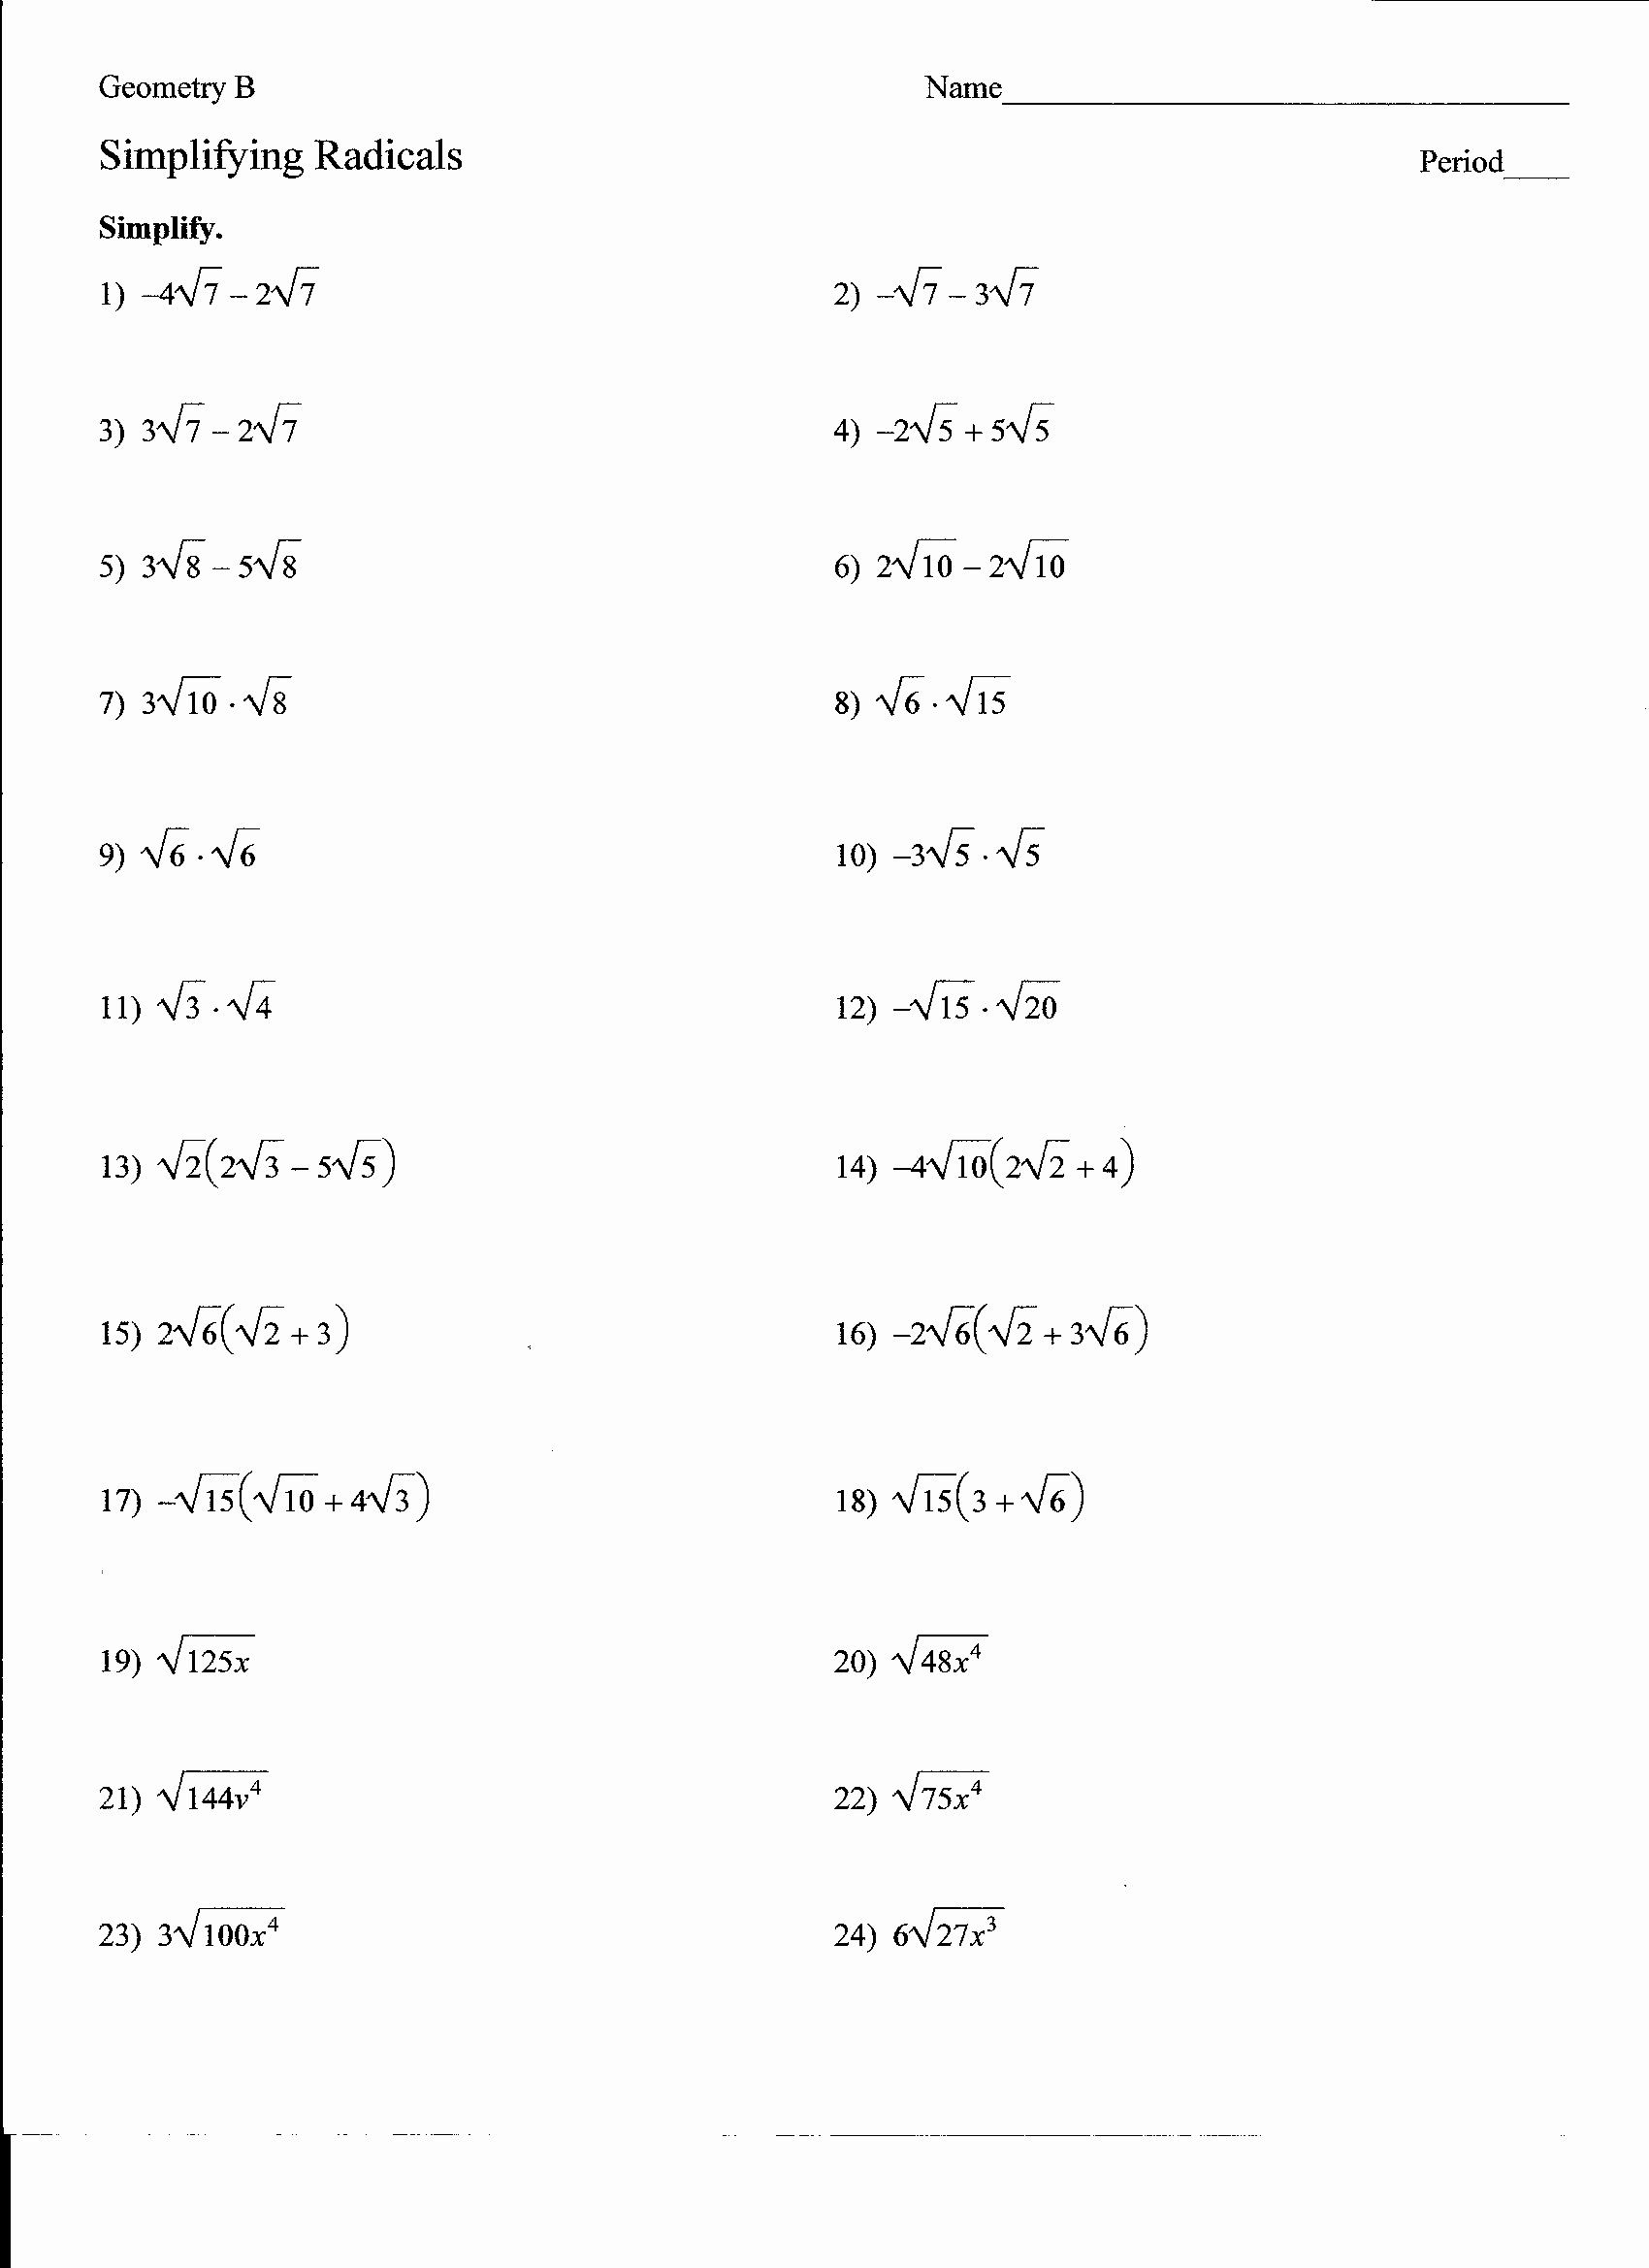 Simplifying Radicals Worksheet Algebra 2 Fresh 19 Best Of Multiplying and Dividing Radicals